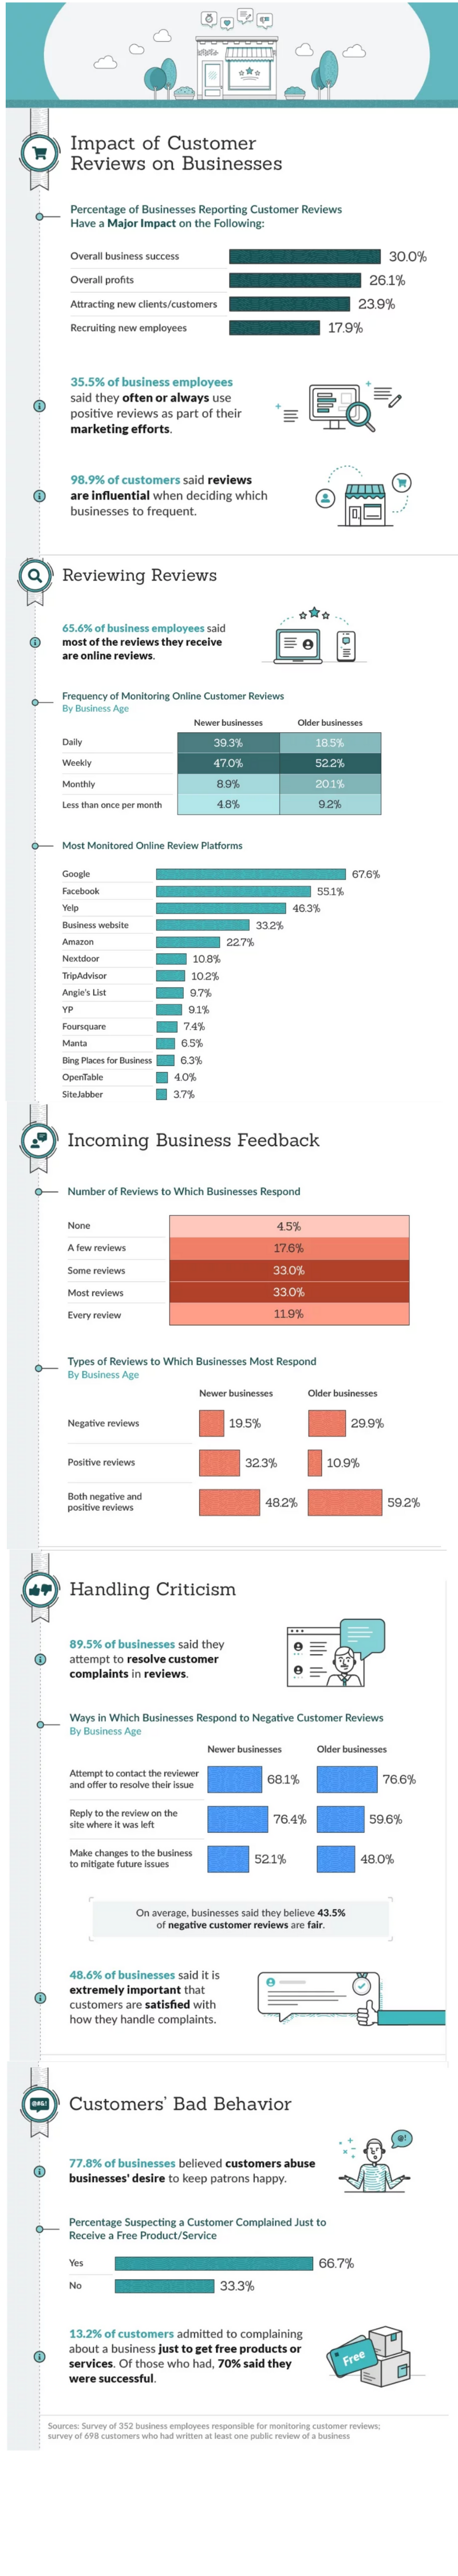 Measuring the Impact of Customer Reviews_ Infographic by ZenBusiness